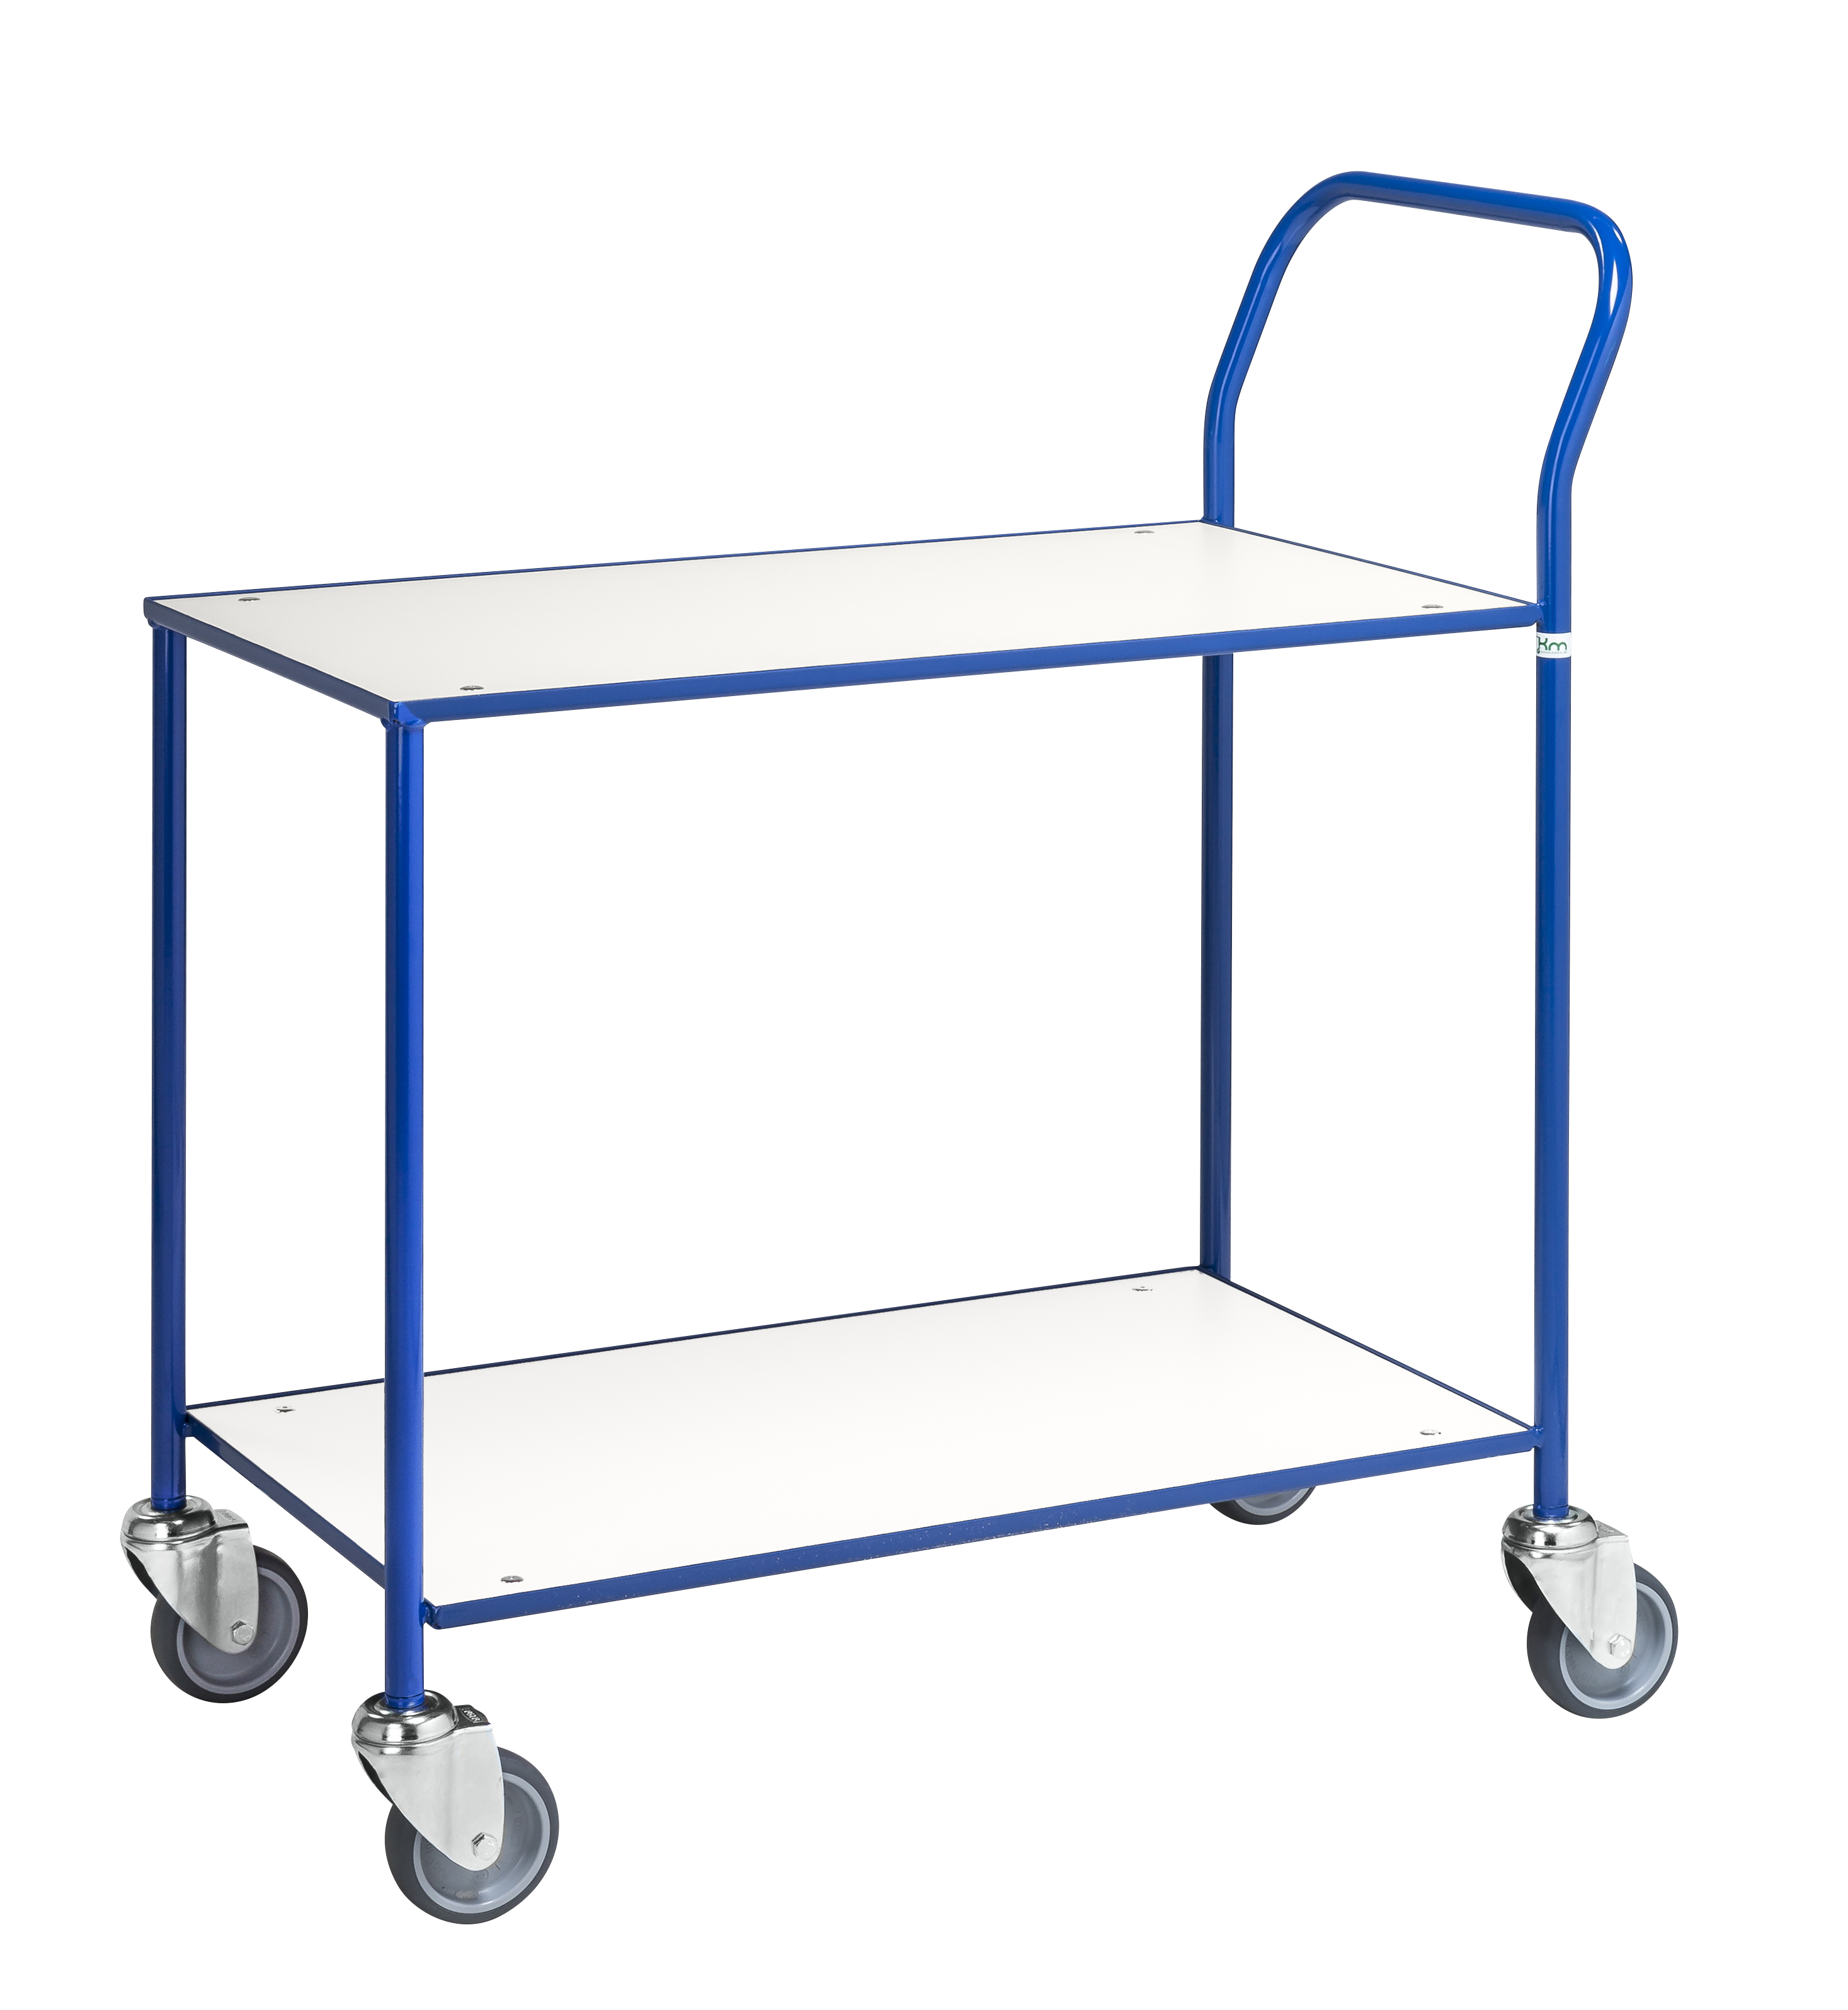 Small table trolley, fully welded KM373-6